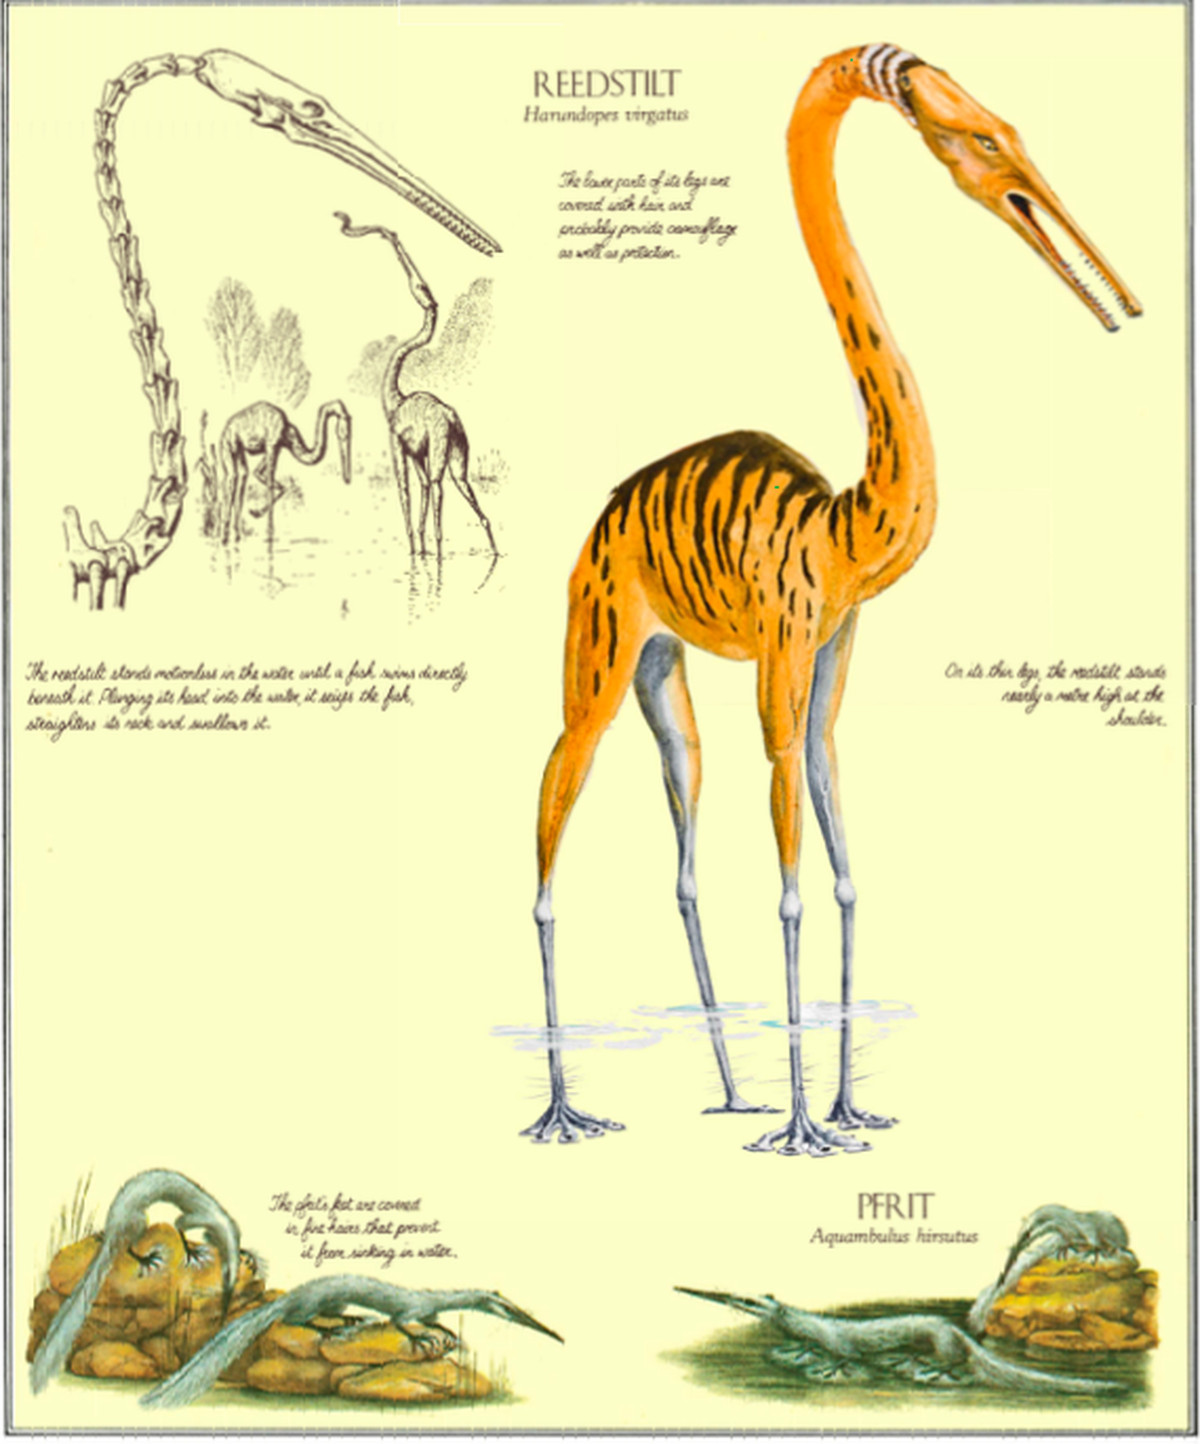 This book imagines what animals might look like if humans ...